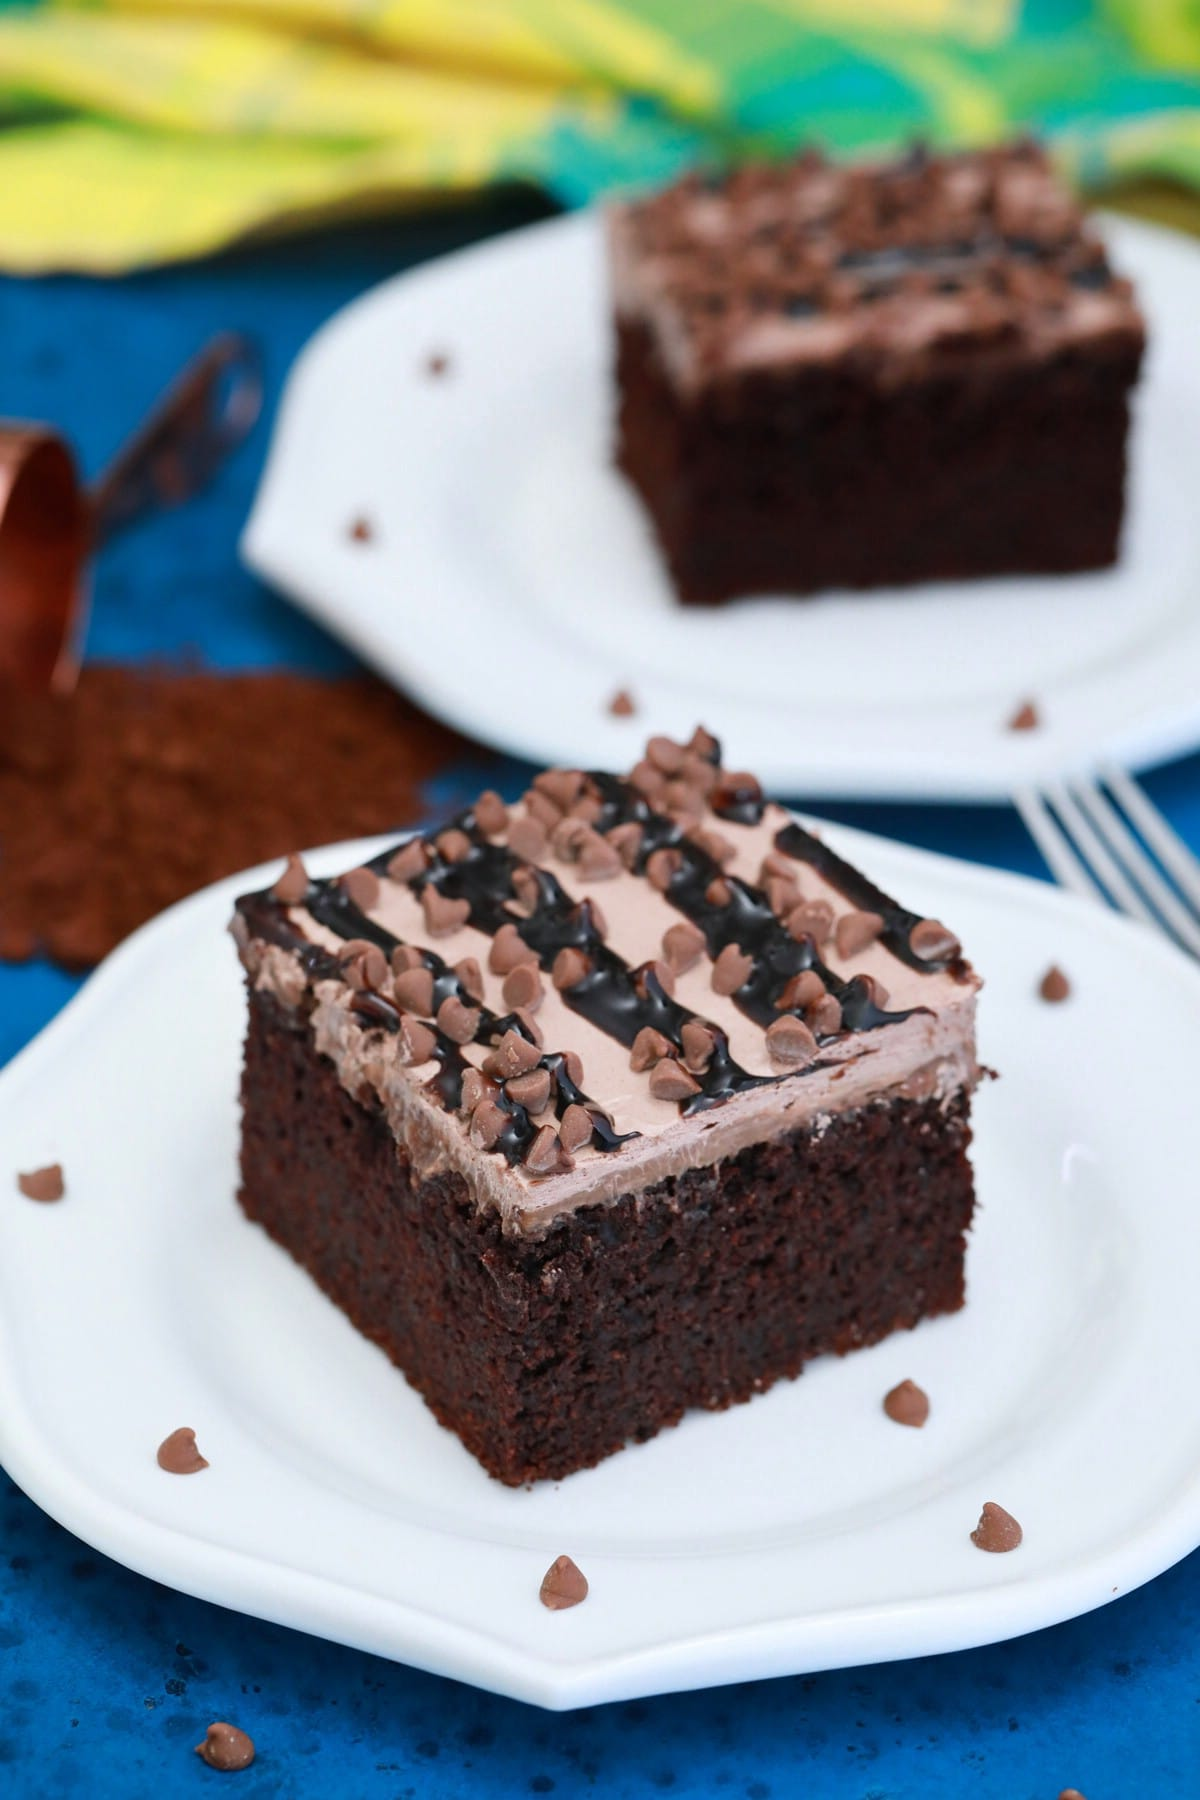 Two white plates with chocolate cake slices